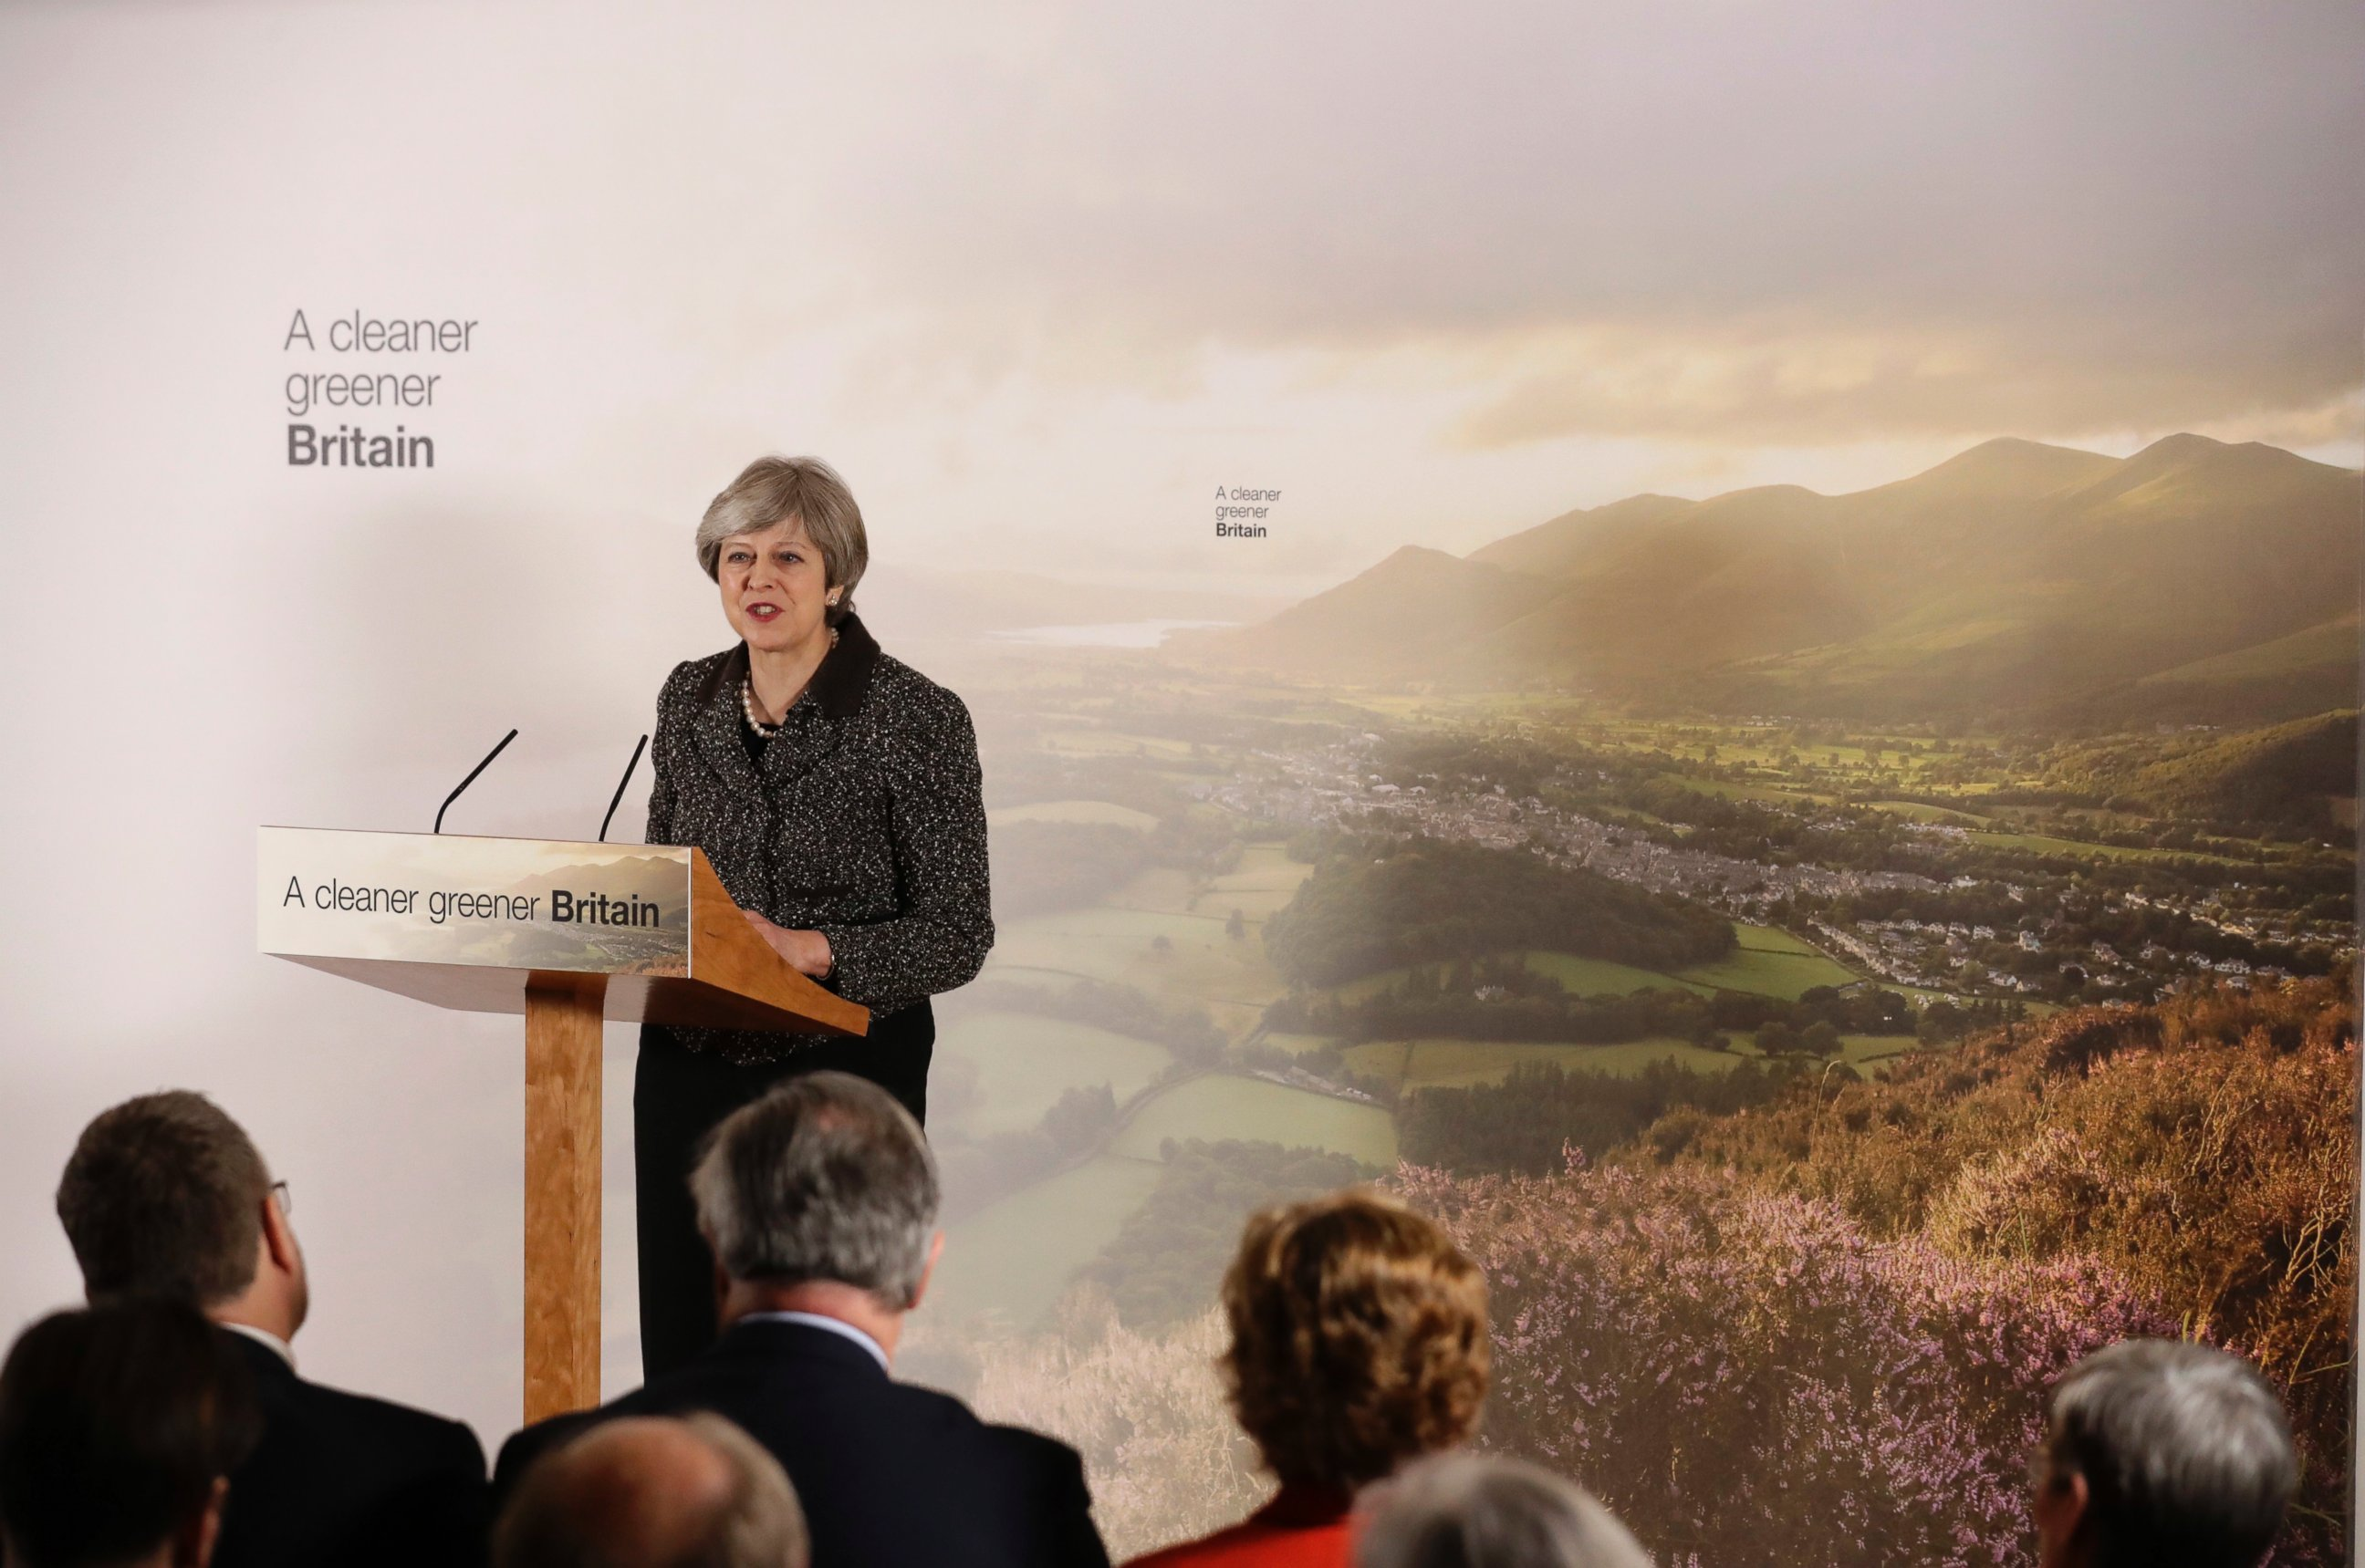 25 Year Environment Plan, Industrial Strategy white paper, environment and economy, Prime Minister Theresa May, UK Government, Britain, Green Brexit, Environmental groups, CSE, Global Certified Sustainability (CSR) Practitioner Program